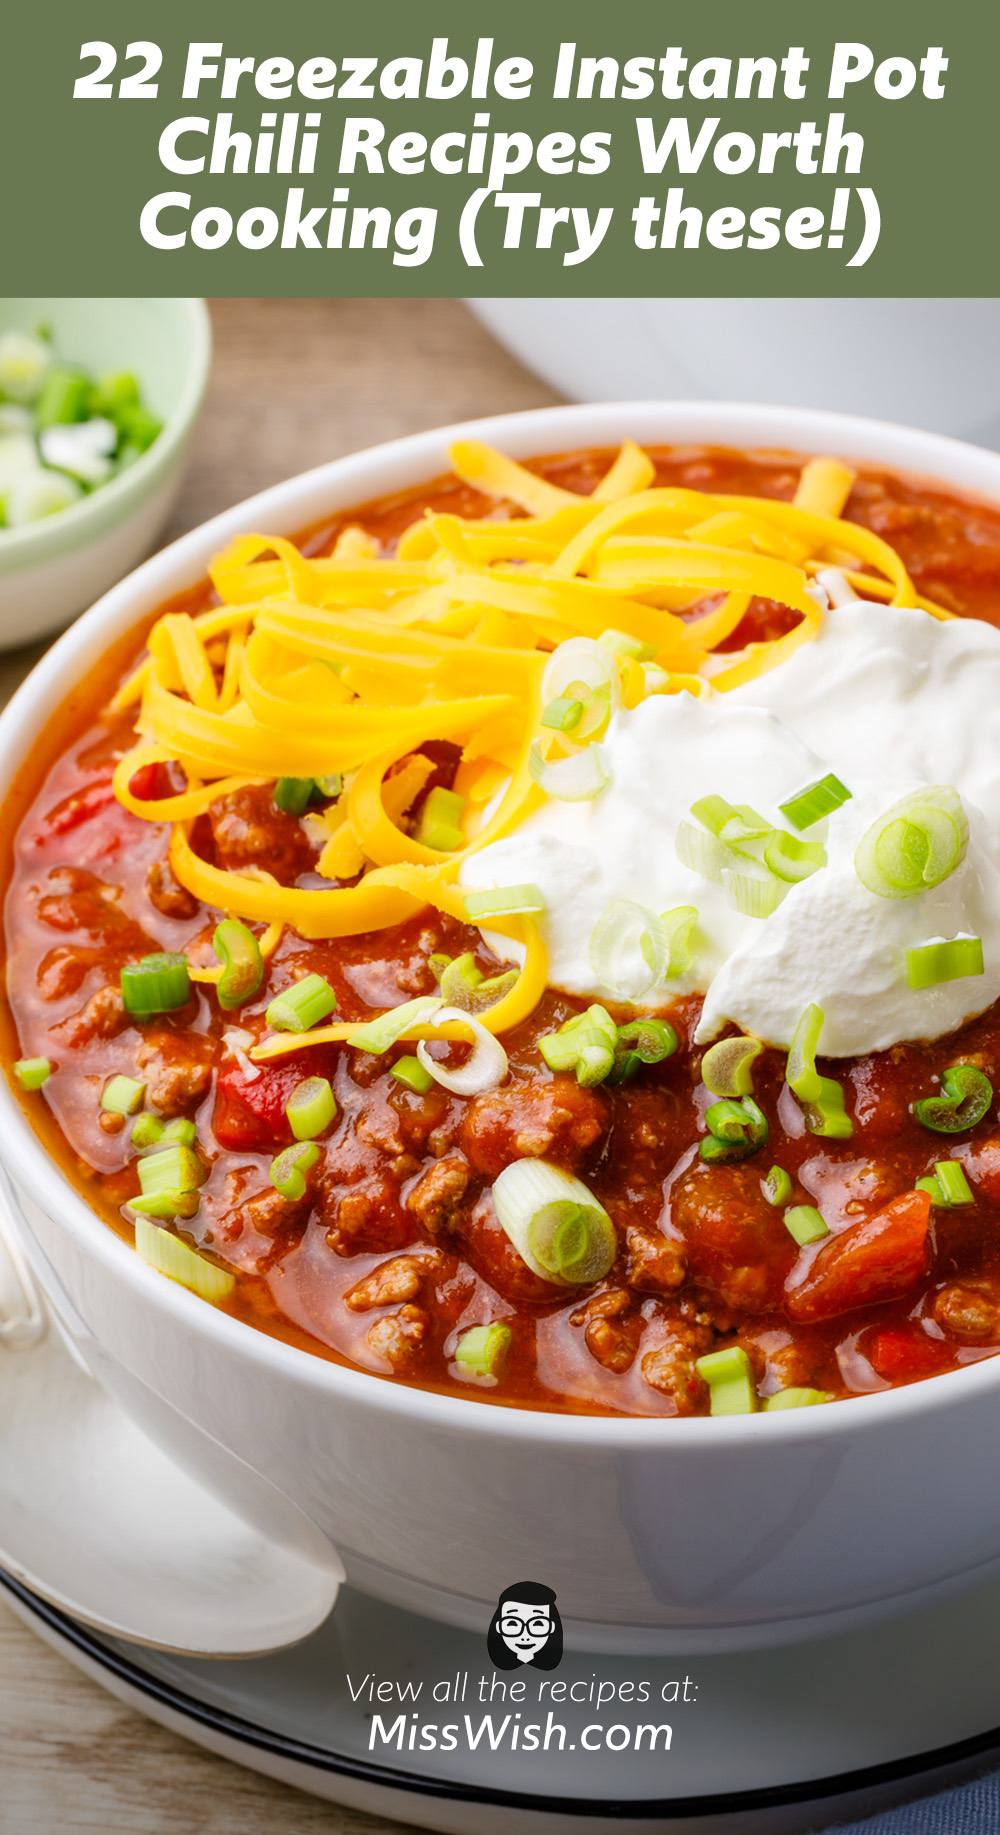 22 Freezable Instant Pot Chili Recipes Worth Cooking